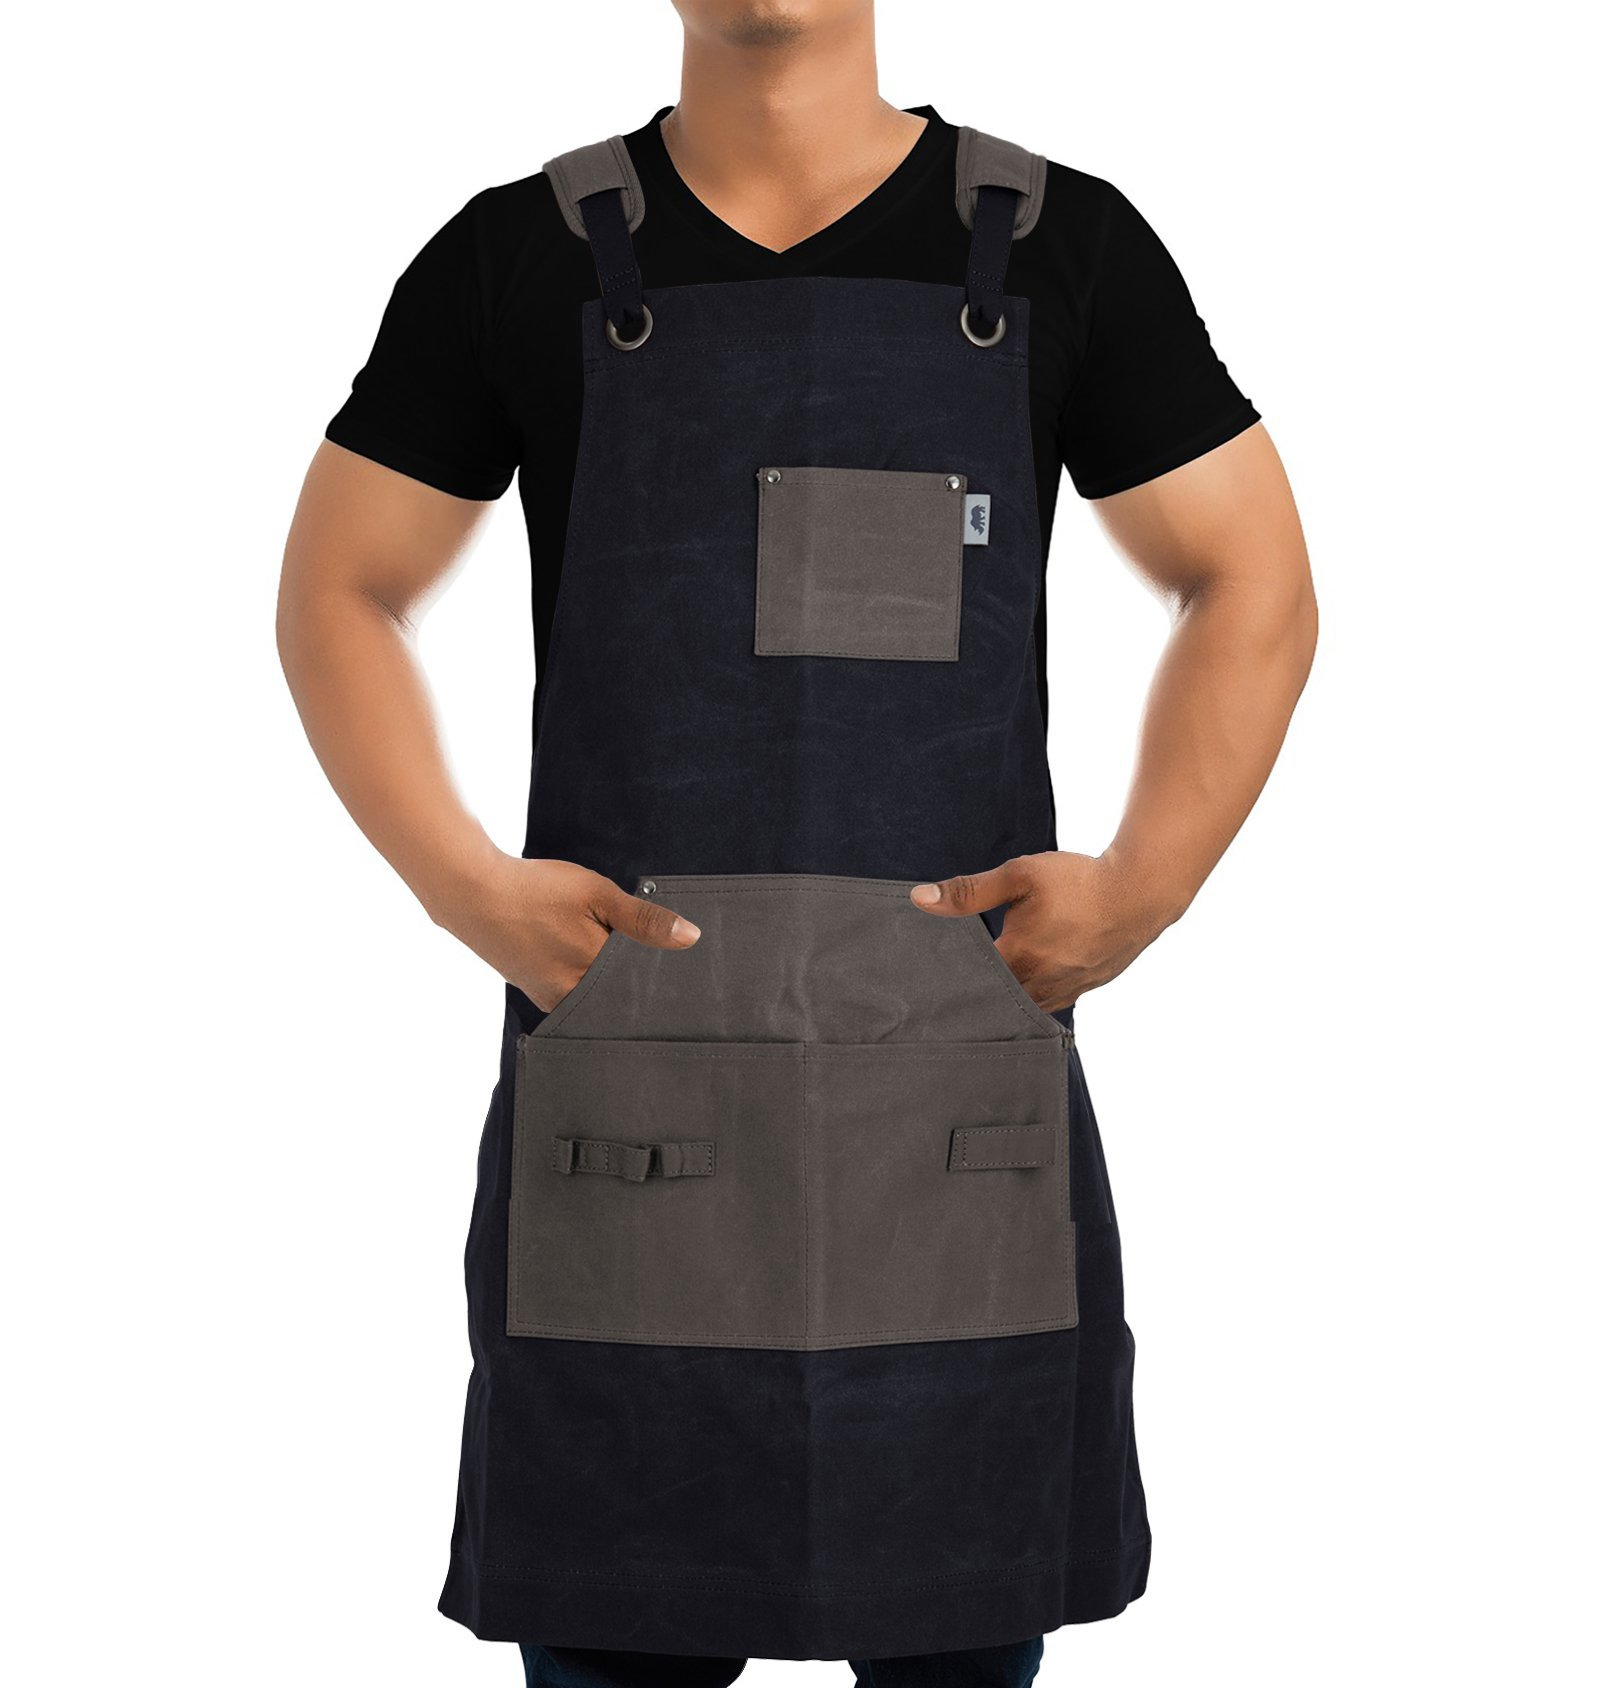 Work Apron For Men & Women By Premium Rhino - Heavy Duty Waxed Canvas - Multiple Tools Pockets - Adjustable Unisex Sizing - For Woodworking, Painting, Crafting, Cooking & Bartenders (BLACK)